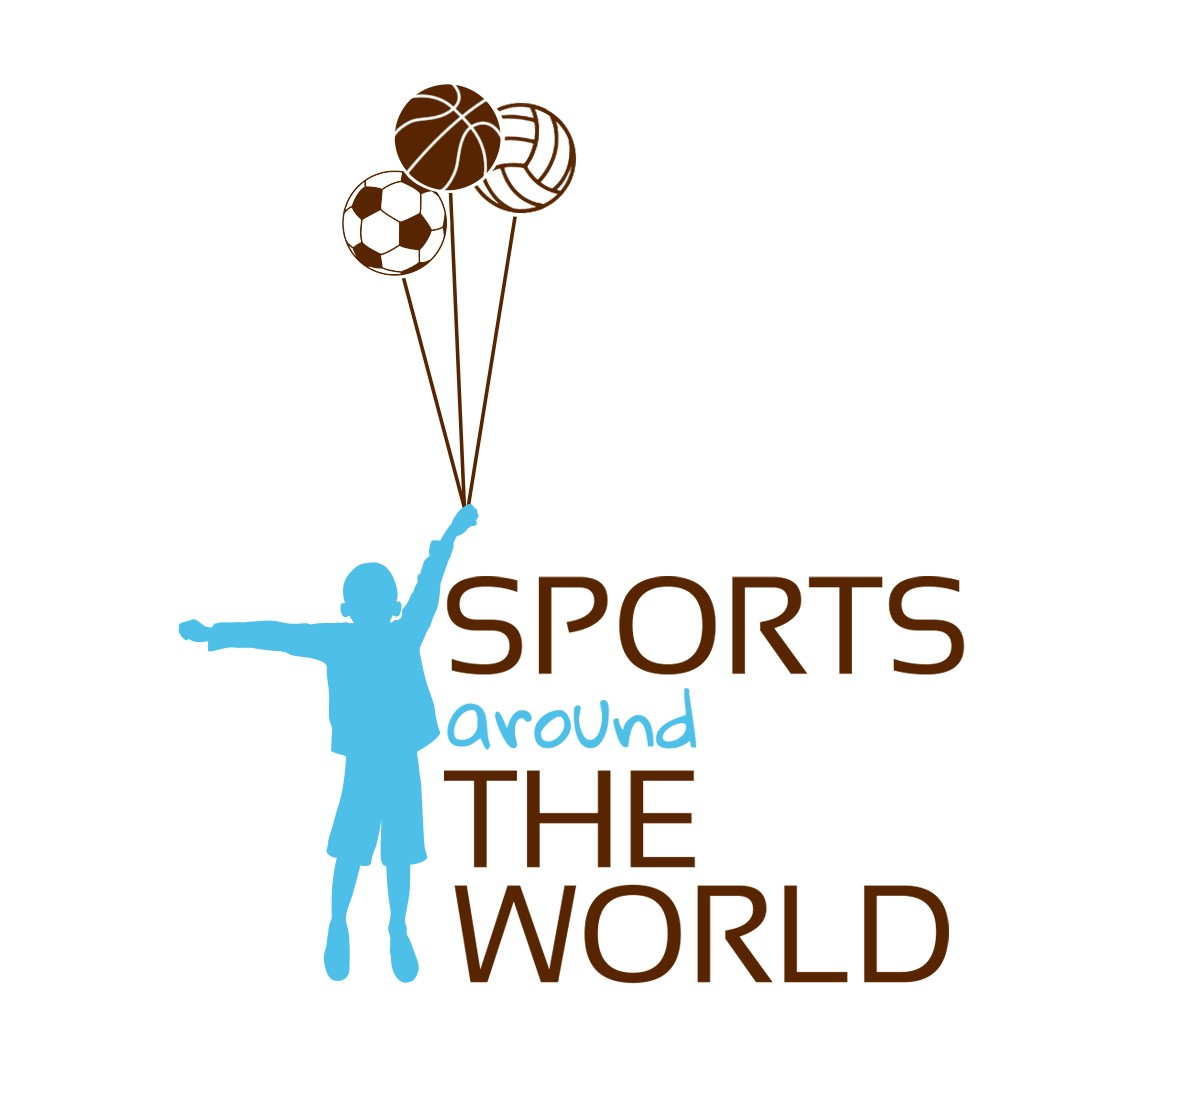 Sports Around the World - Amici in campo onlus